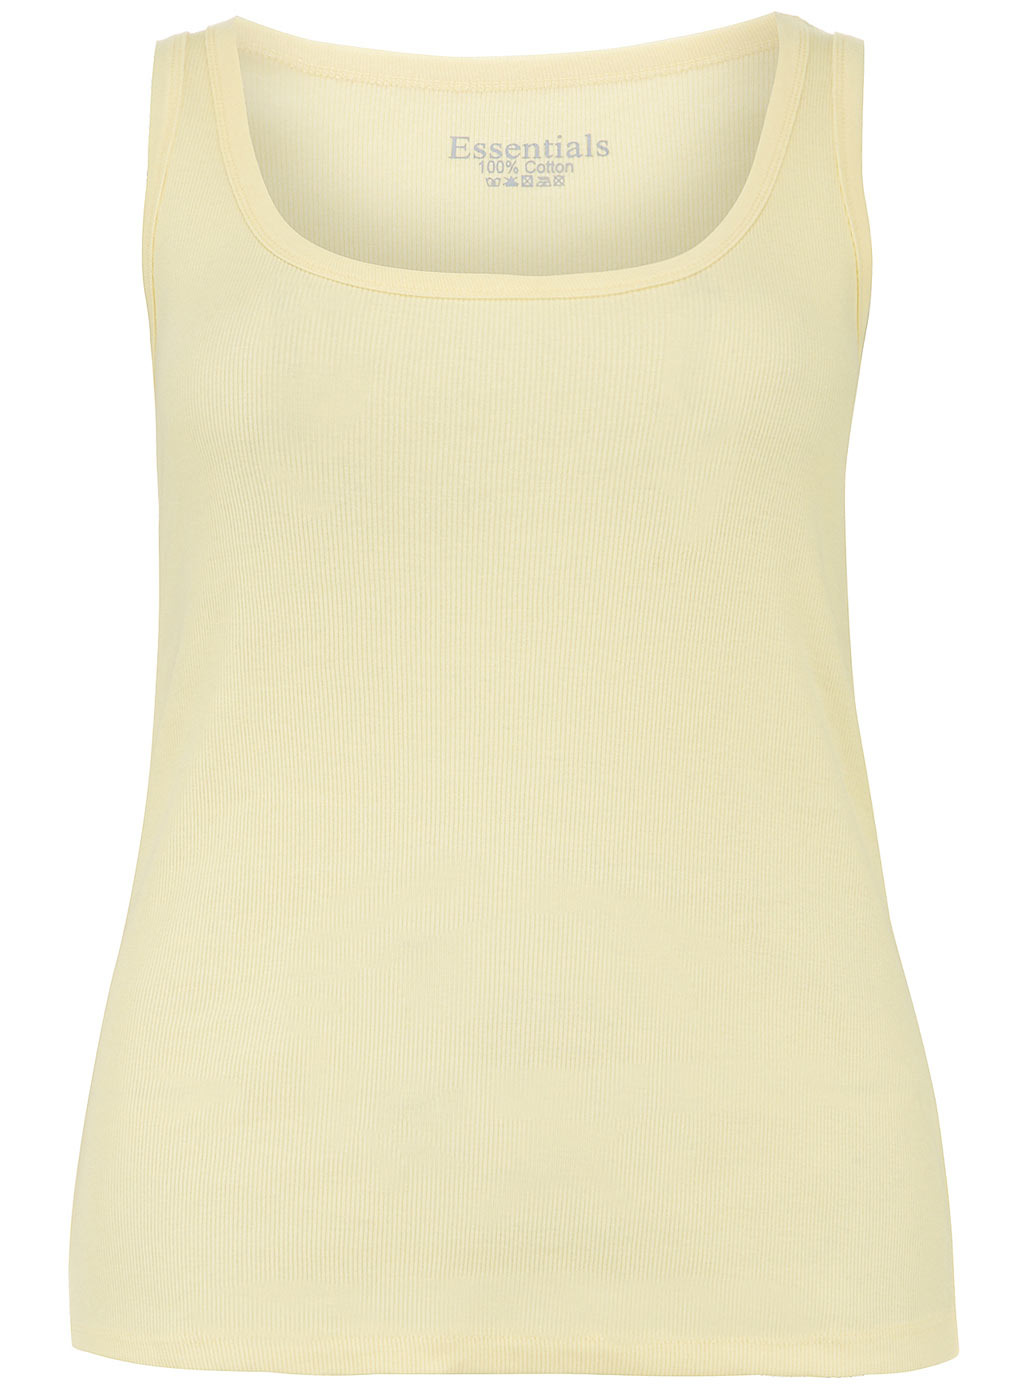 Yellow Ribbed Vest - pattern: plain; sleeve style: sleeveless; style: vest top; predominant colour: primrose yellow; occasions: casual, holiday; length: standard; neckline: scoop; fibres: cotton - 100%; fit: body skimming; sleeve length: sleeveless; texture group: jersey - clingy; pattern type: fabric; season: s/s 2014